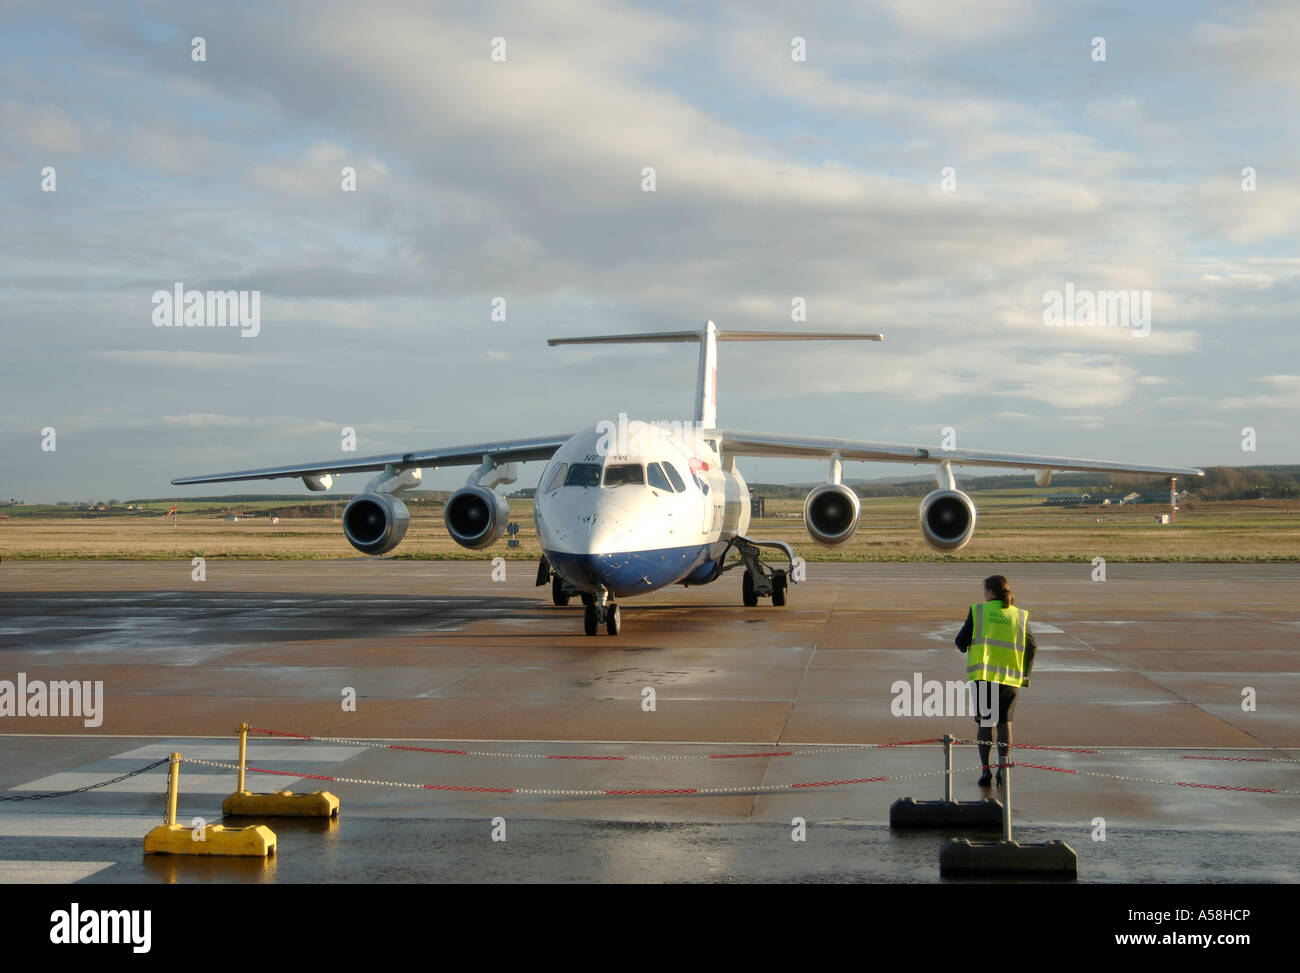 Commercial Passenger jet BAE 146-300 at Inverness Dalcross Airport.  XAV 4880-457 - Stock Image